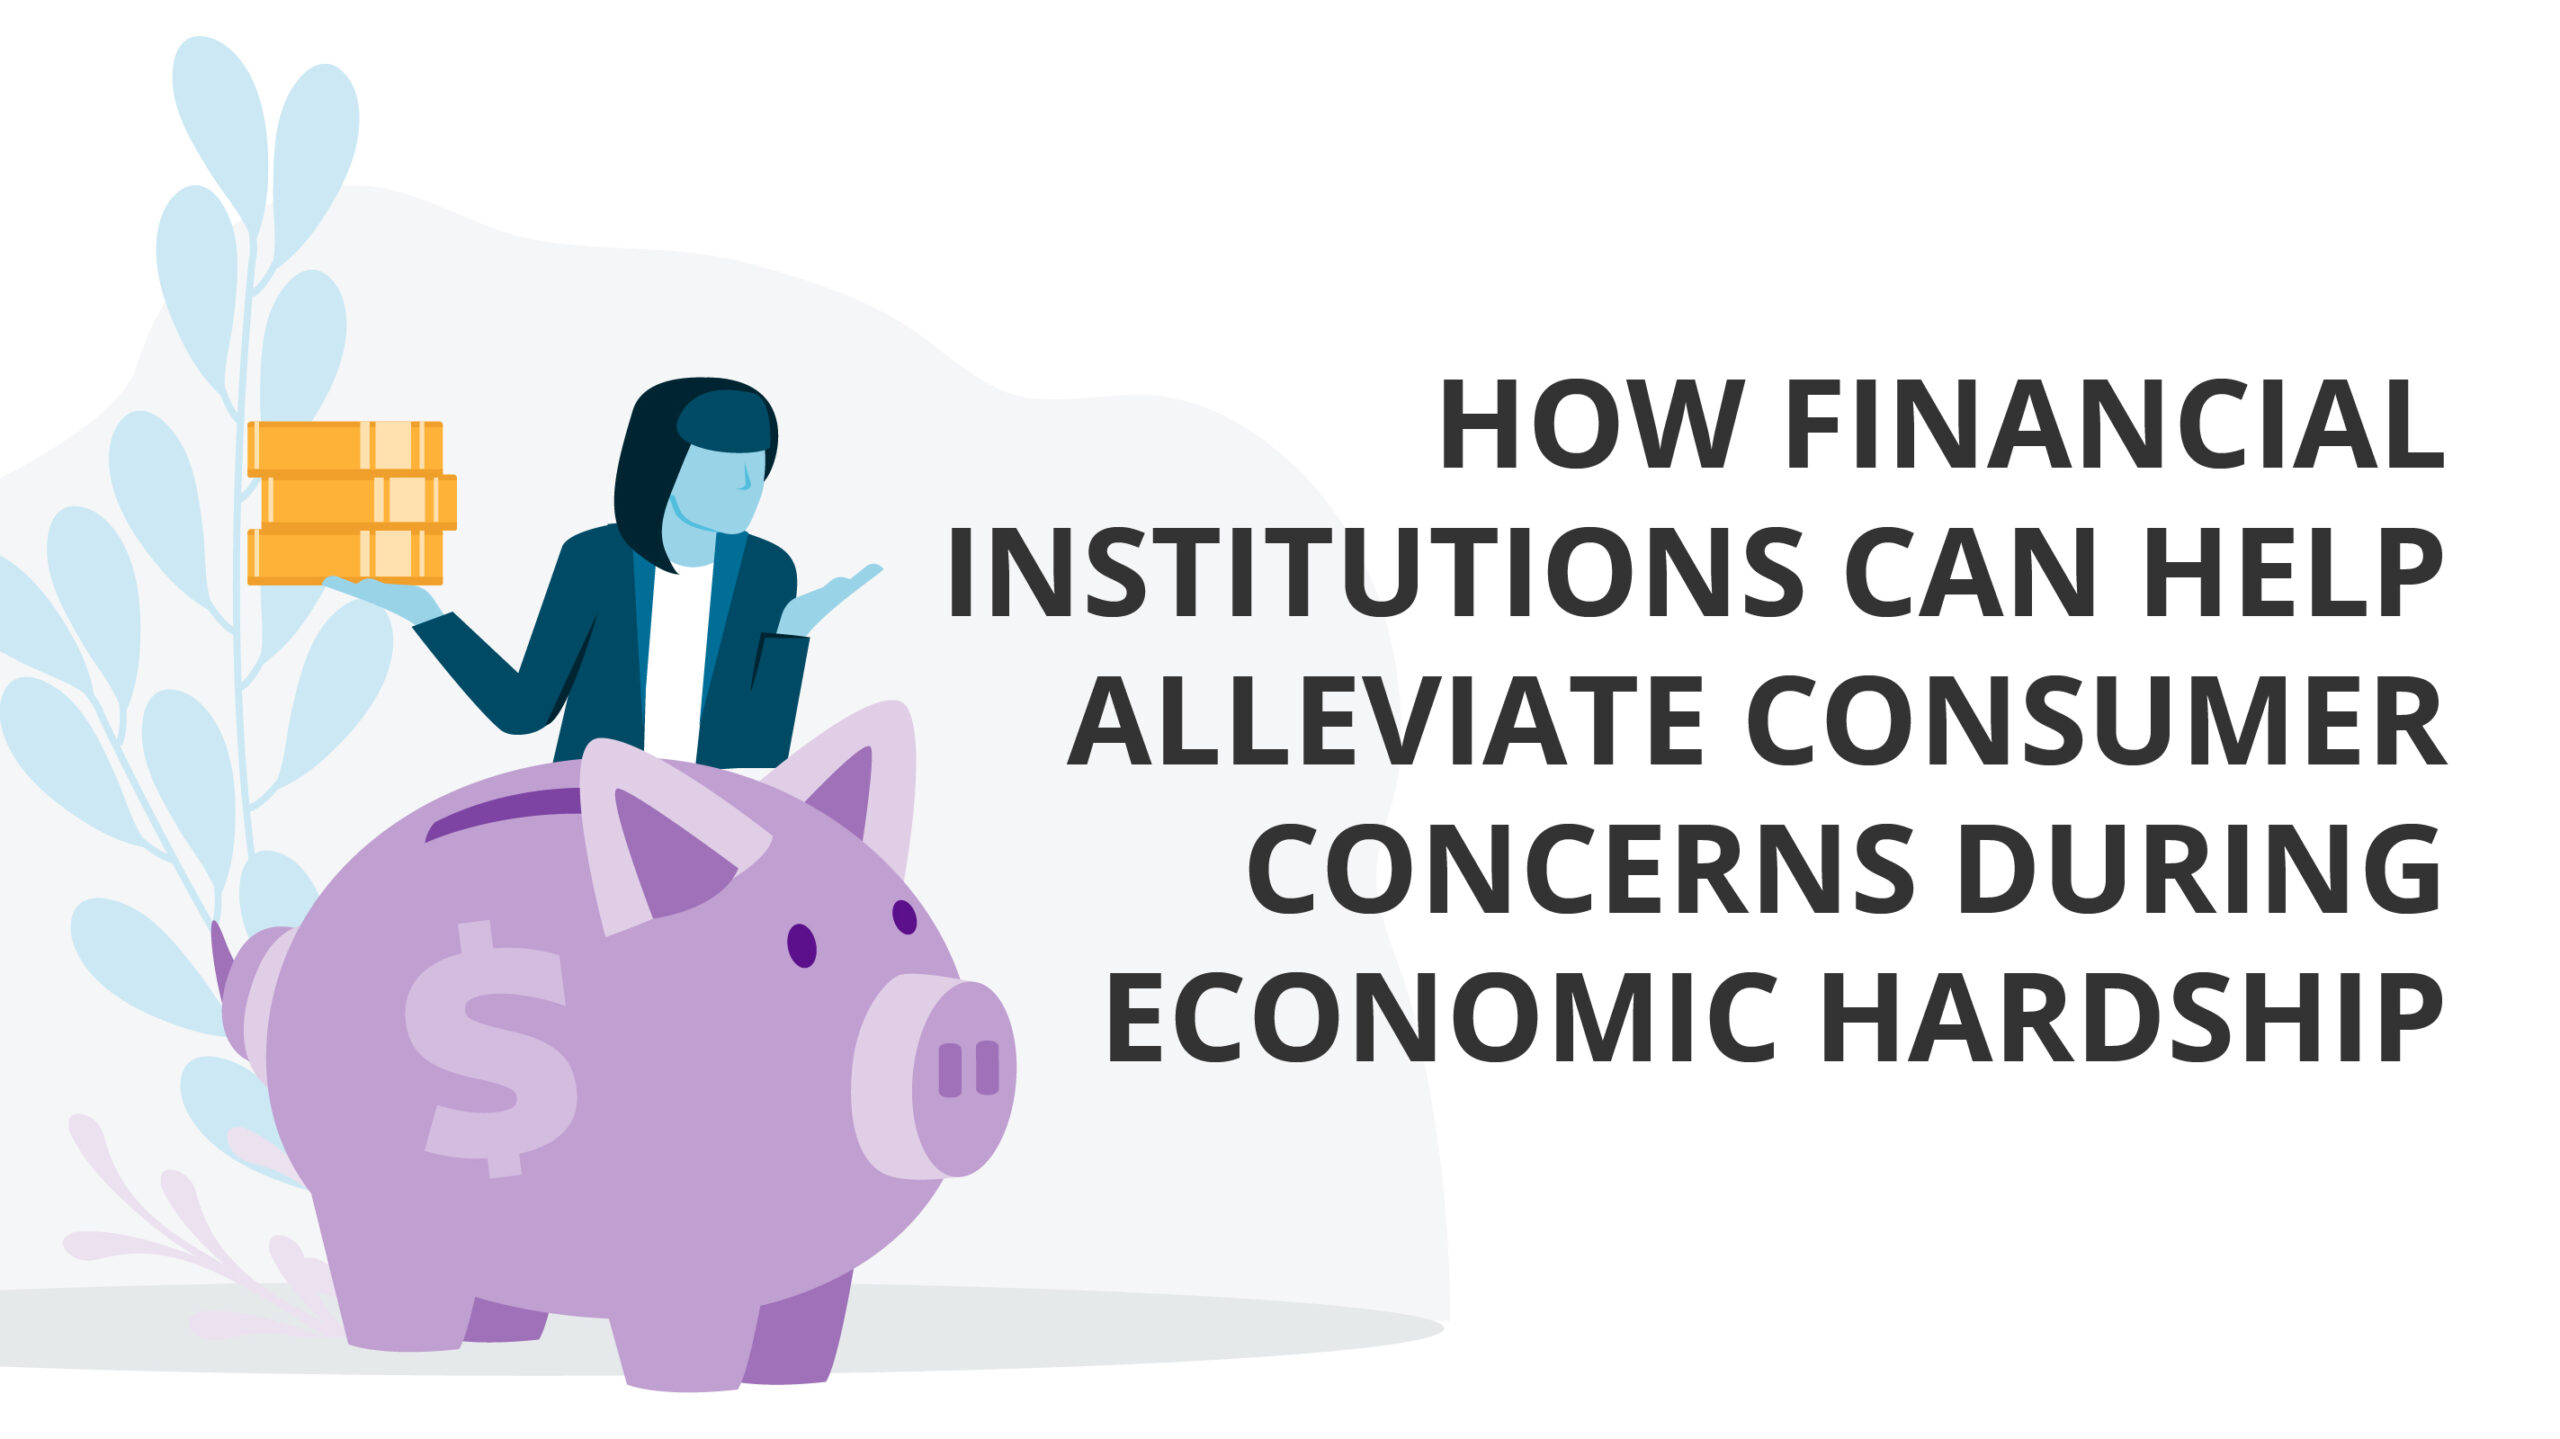 How Financial Institutions can Help Alleviate Consumer Concerns During Economic Hardship